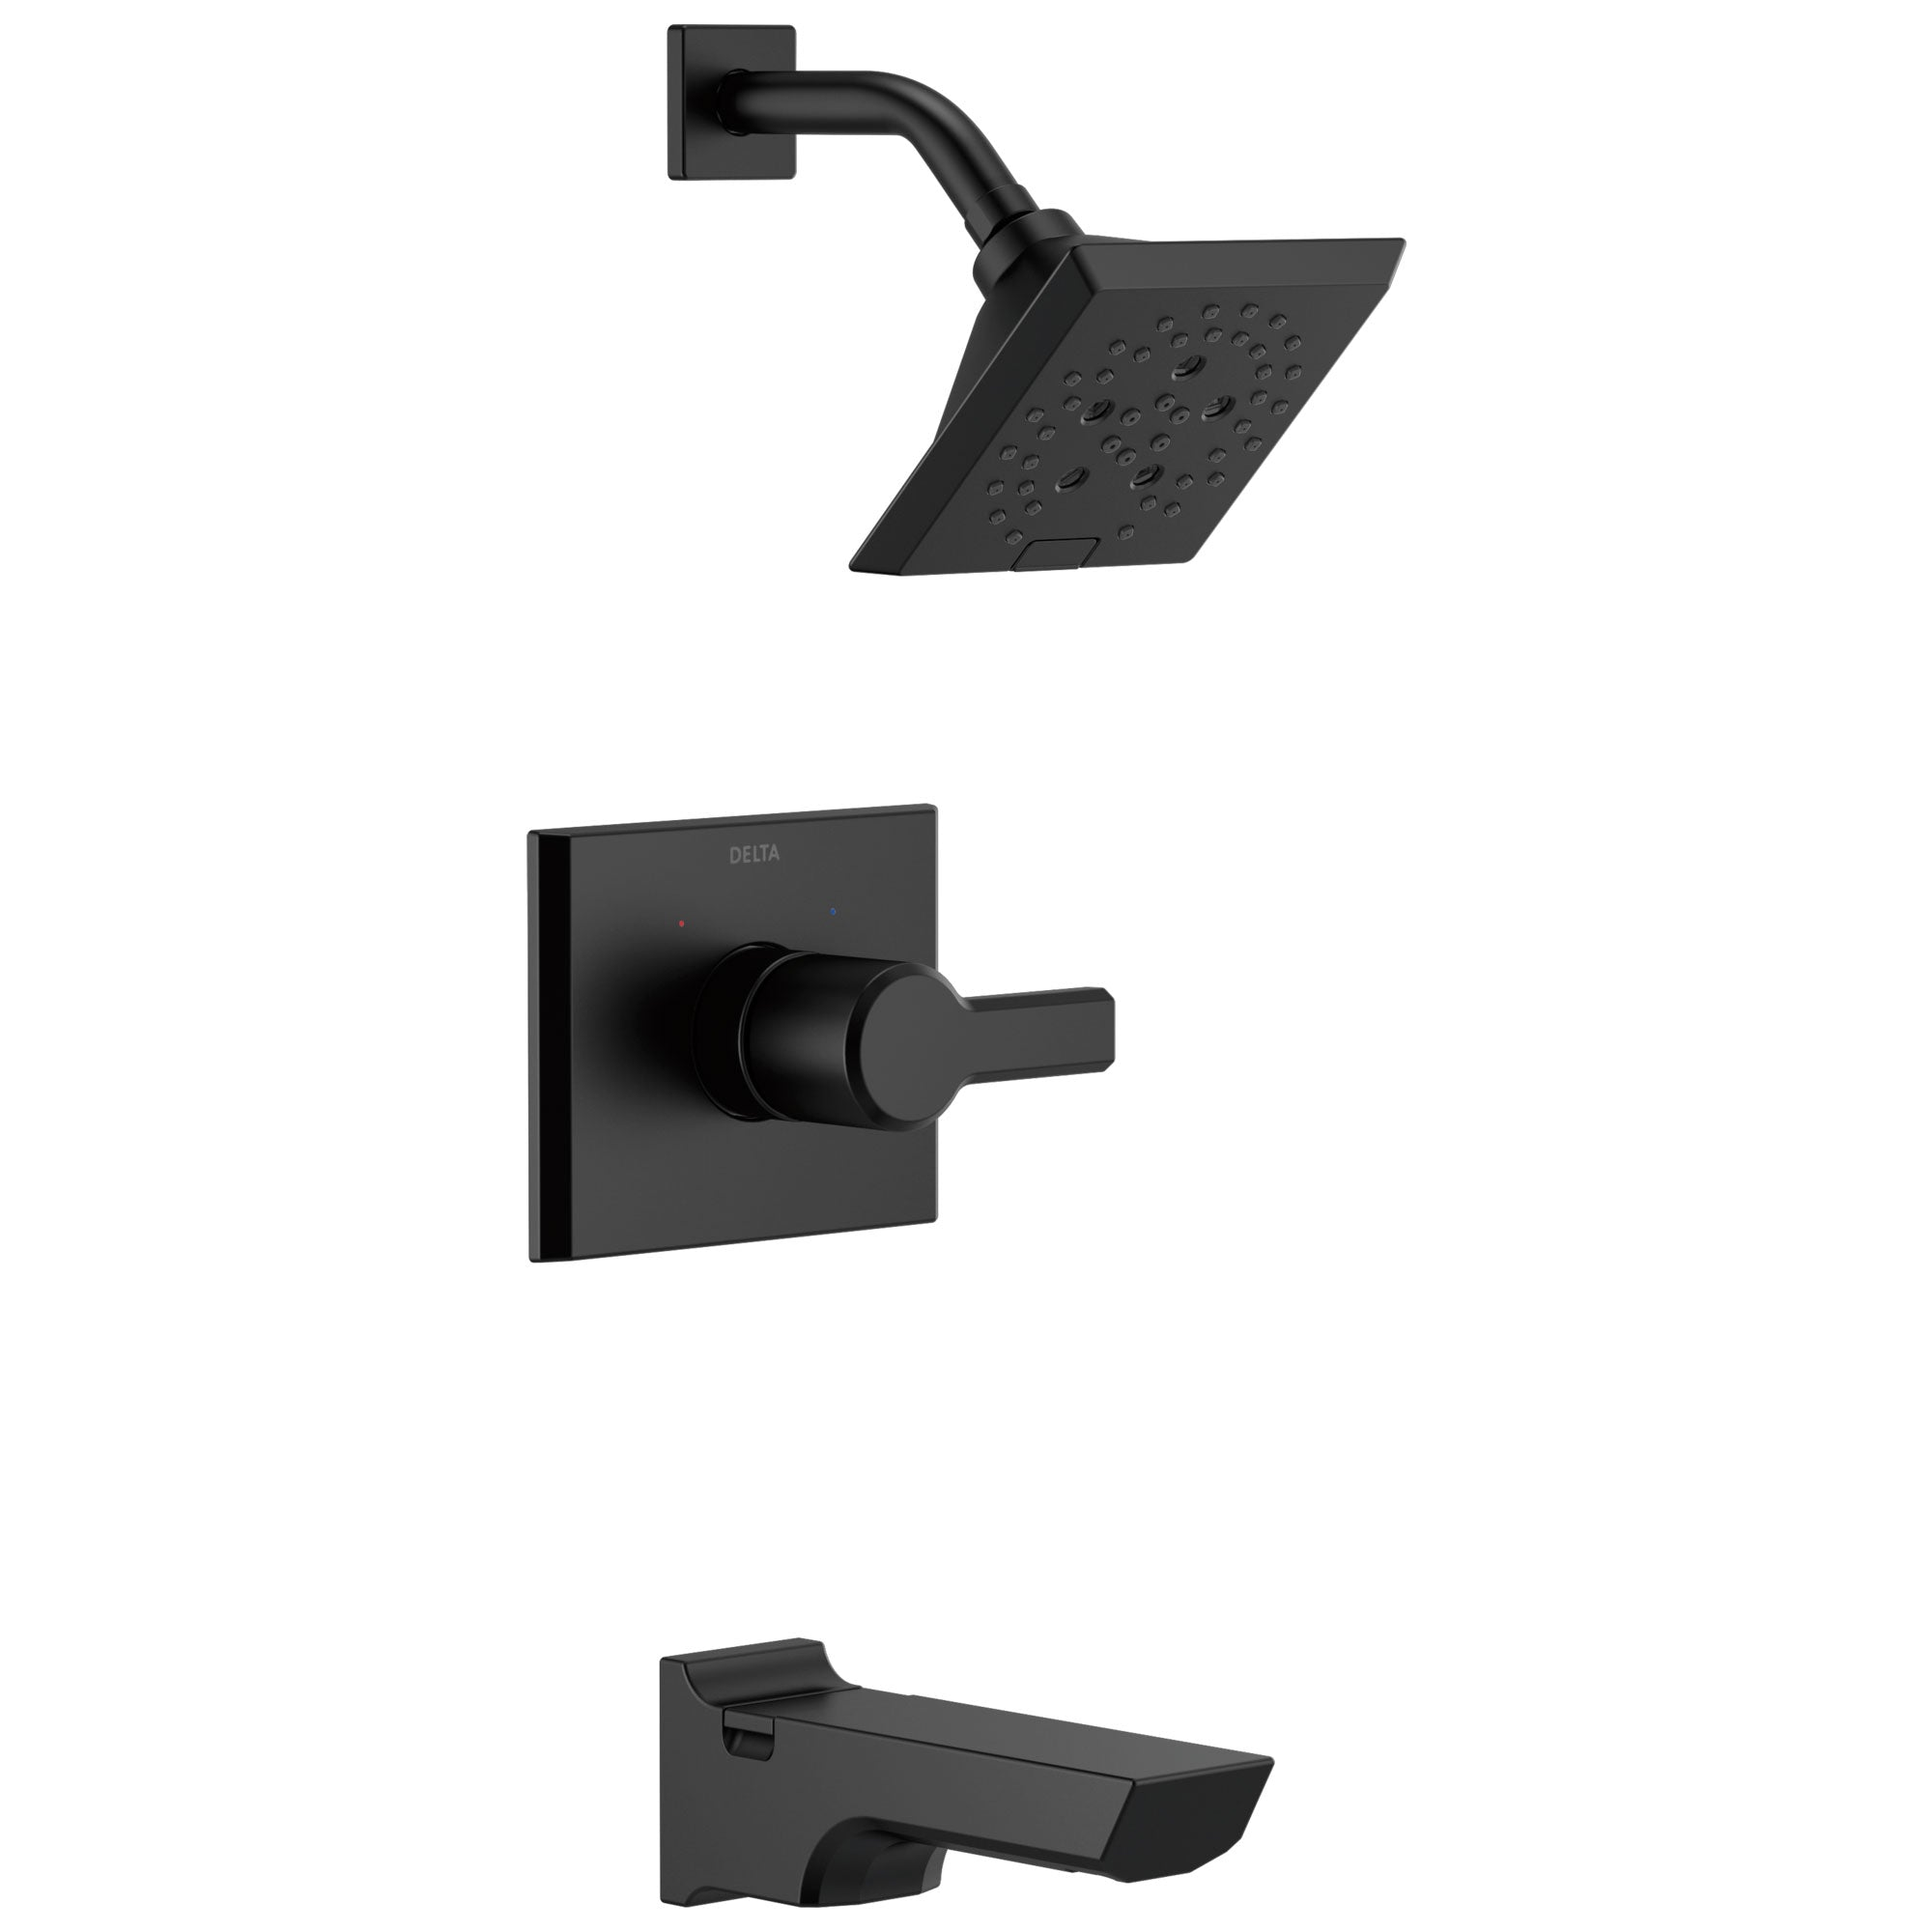 Delta Pivotal Matte Black Finish Tub and Shower Combination Faucet Includes Monitor 14 Series Cartridge, Handle, and Valve without Stops D3421V